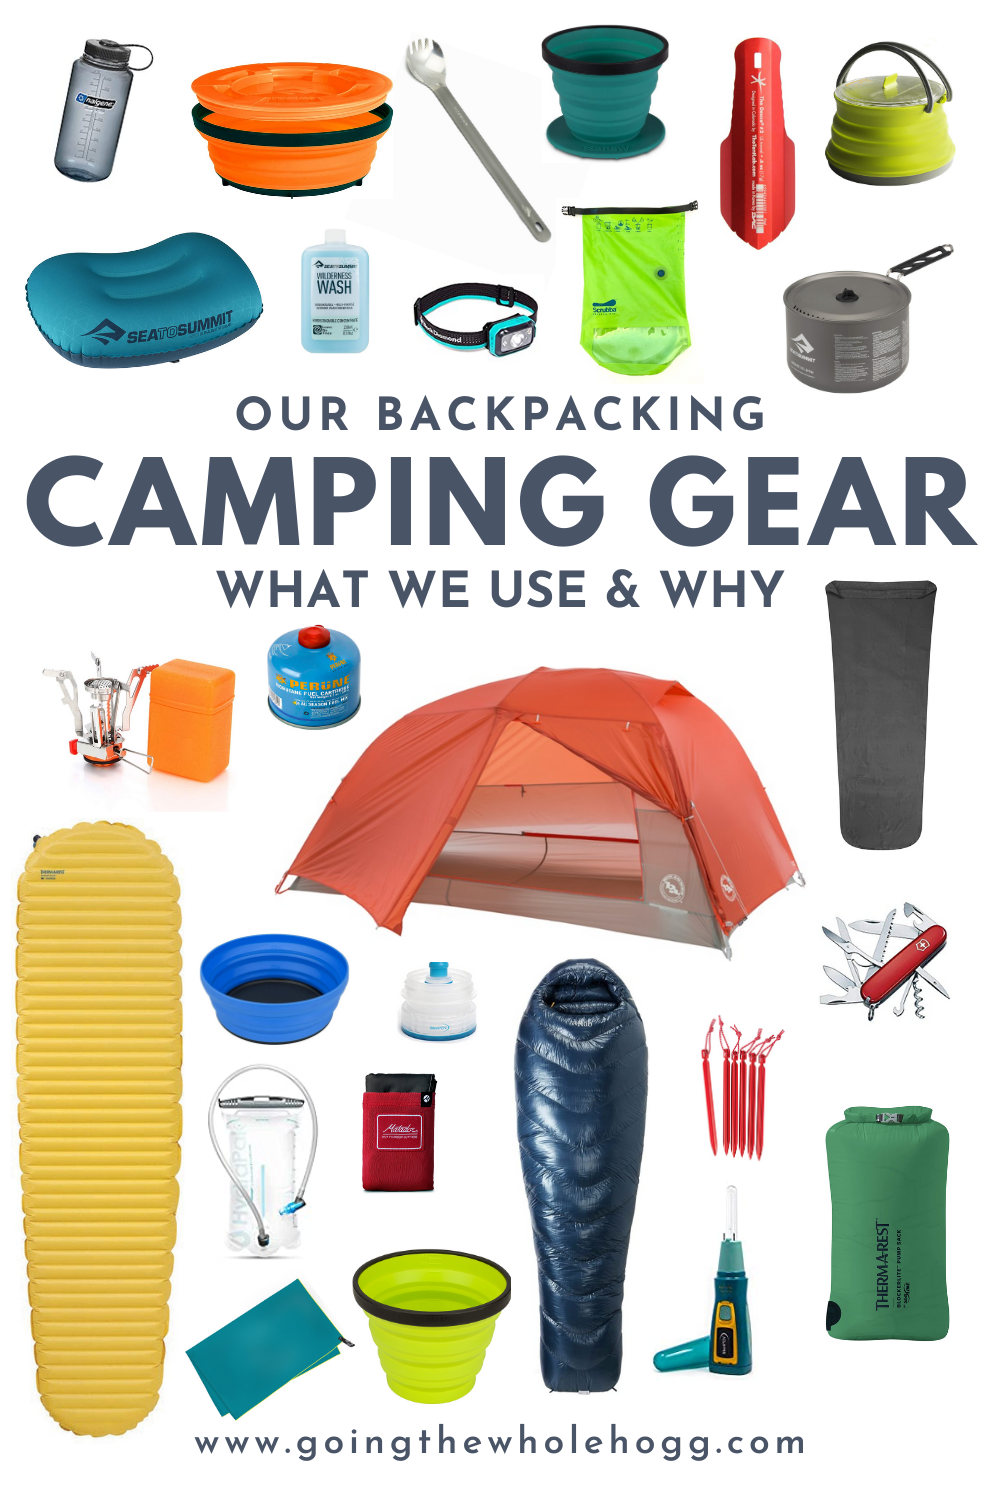 Our Backpacking Camping Gear: What We Use and Why